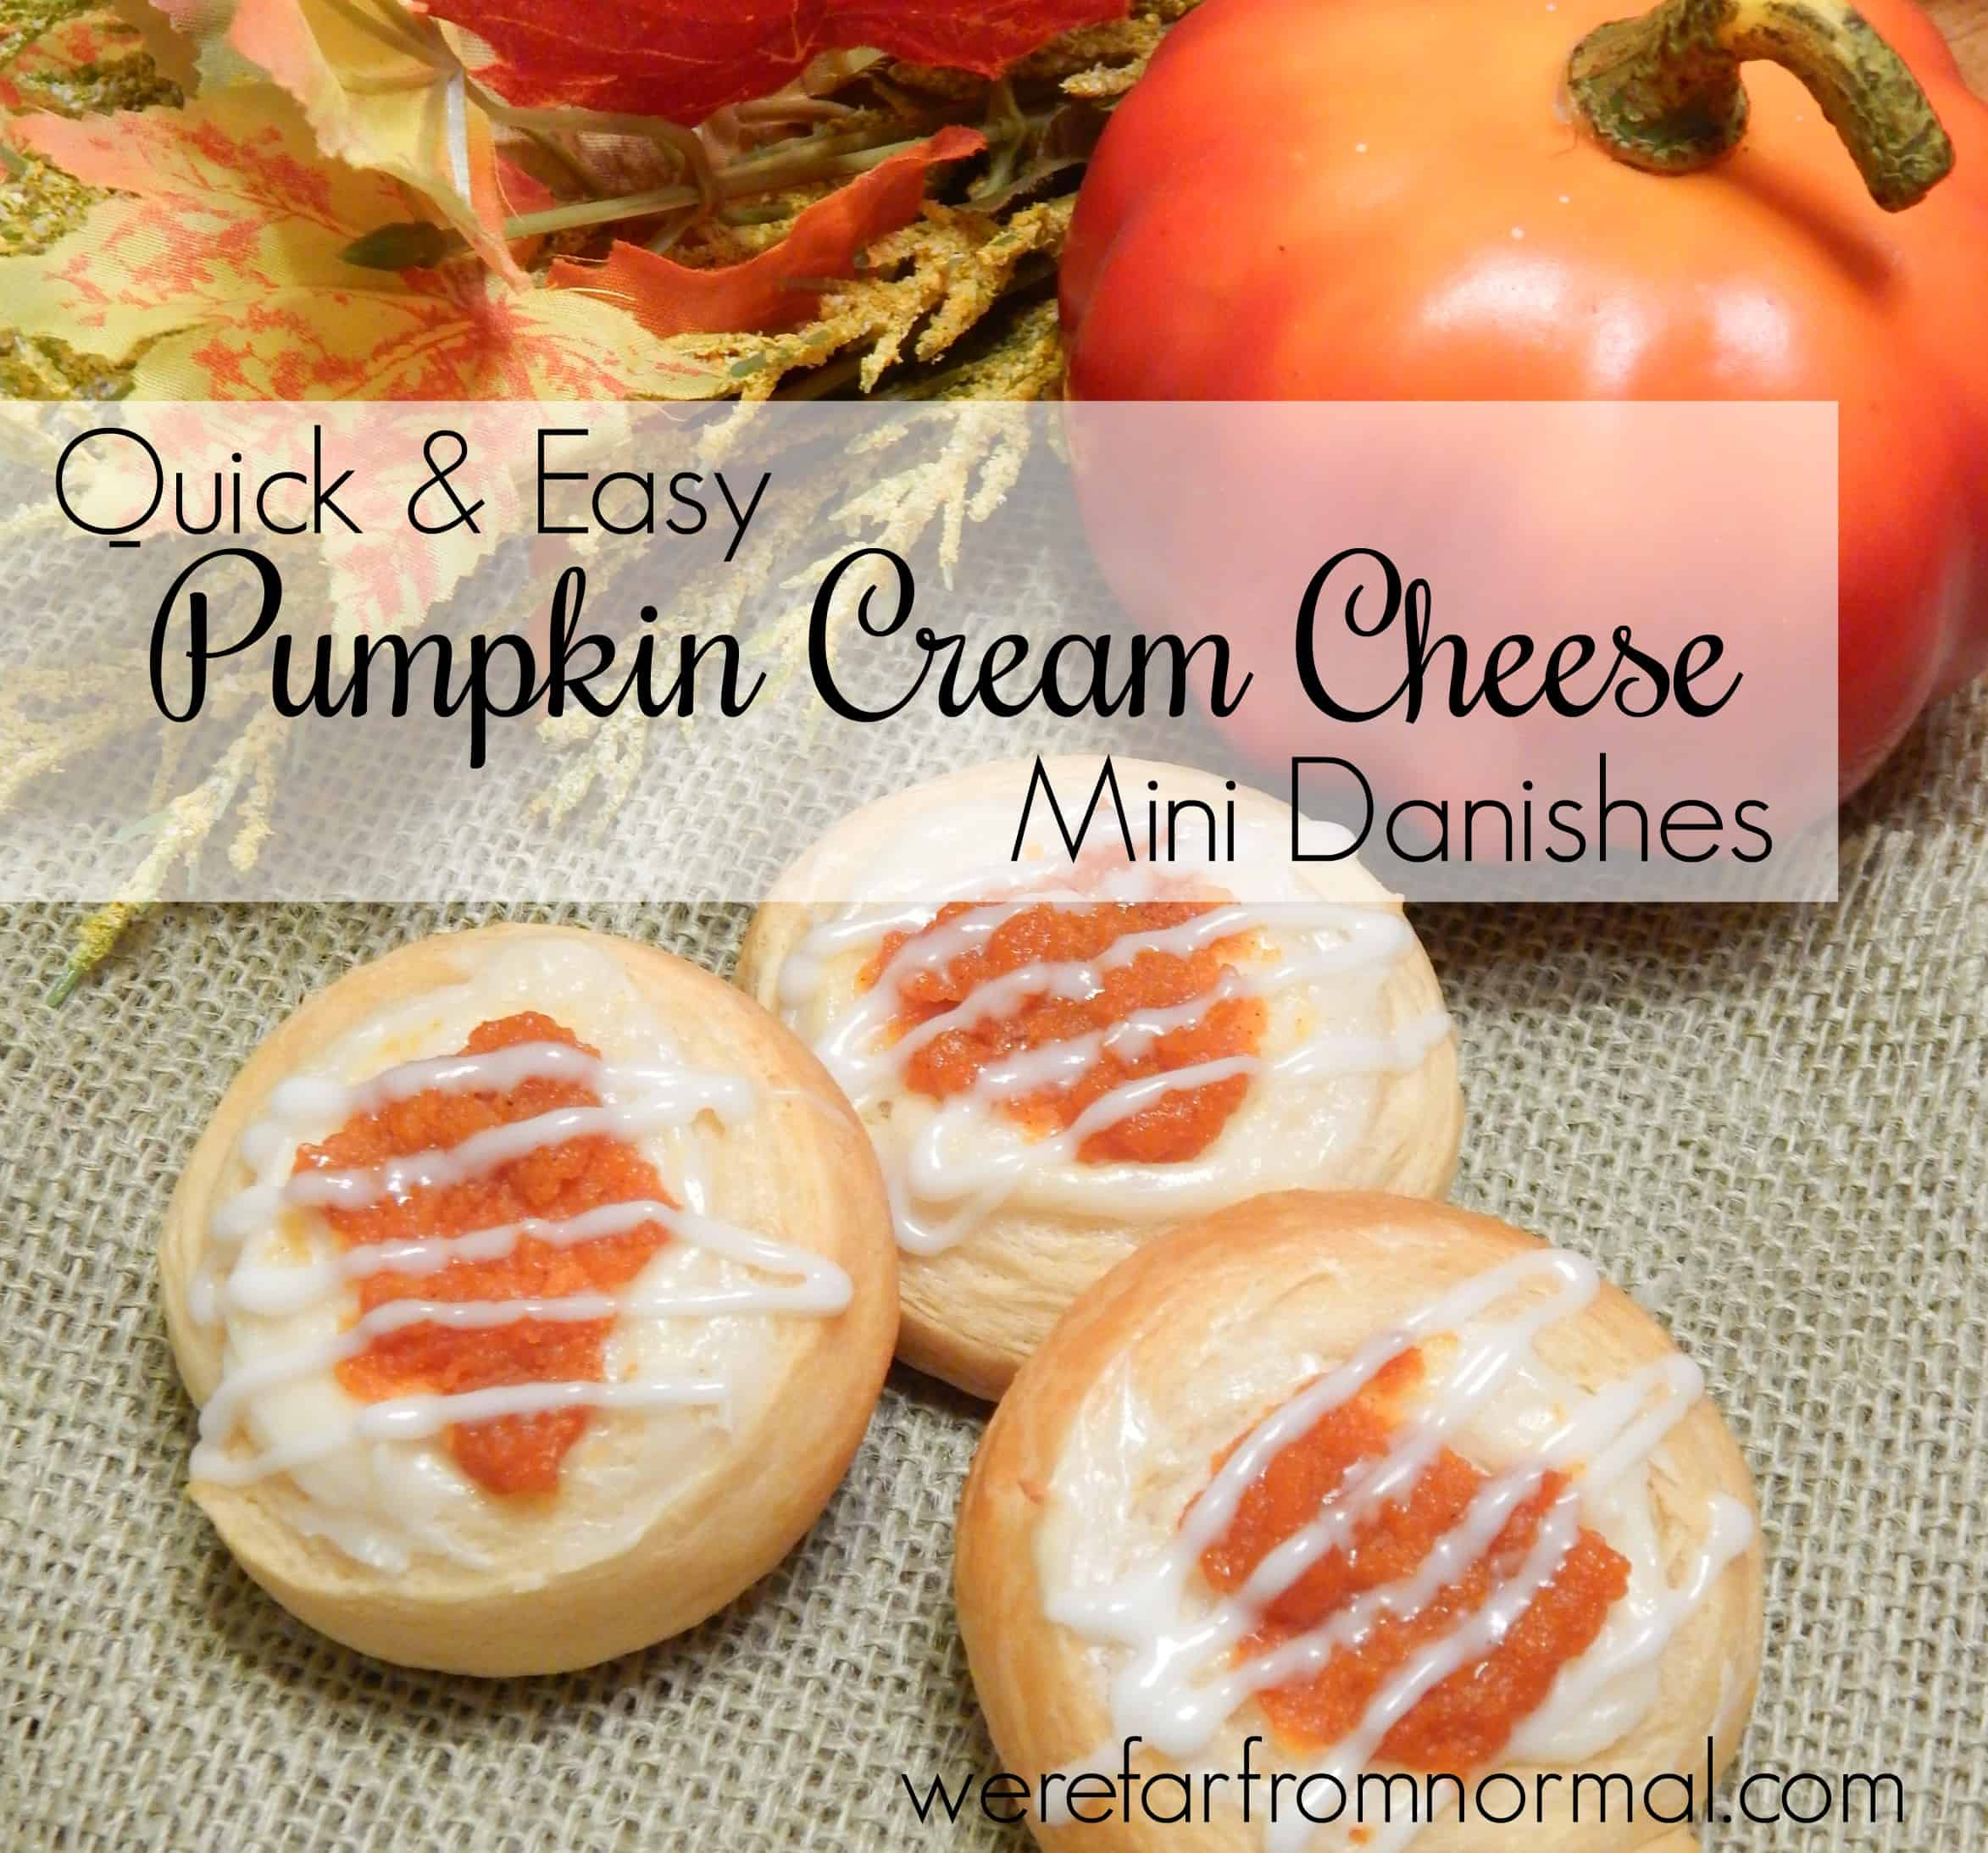 Quick & Easy Mini Pumpkin Cream Cheese Danishes